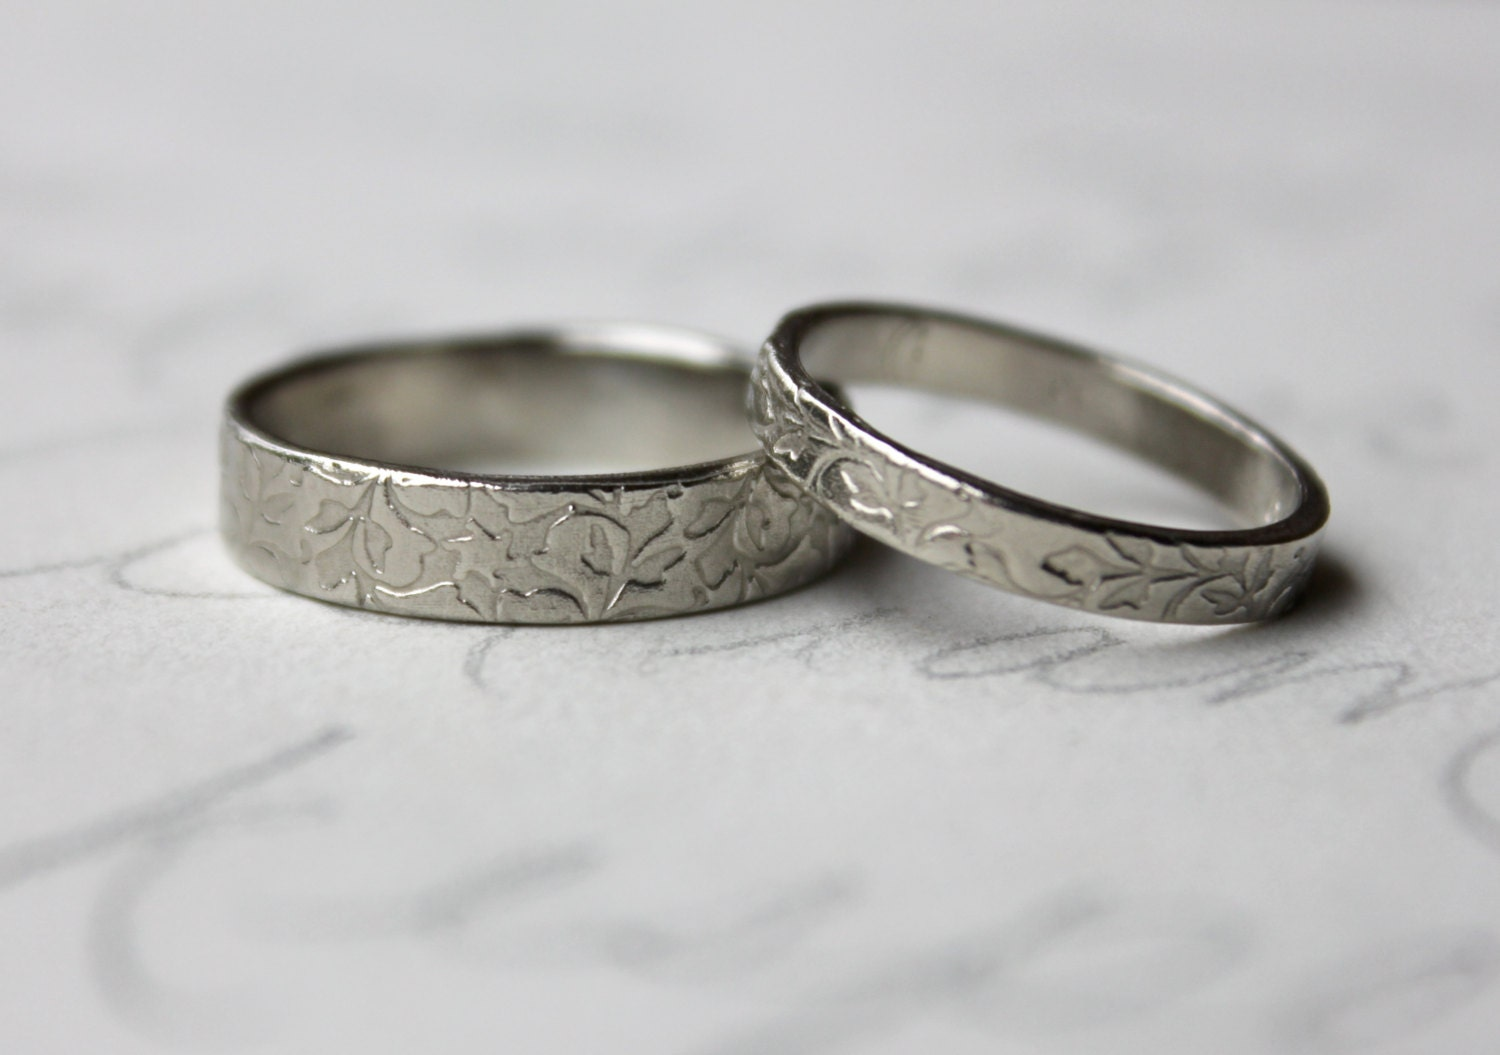 rustic vine wedding band ring set 14k white gold leaf vine